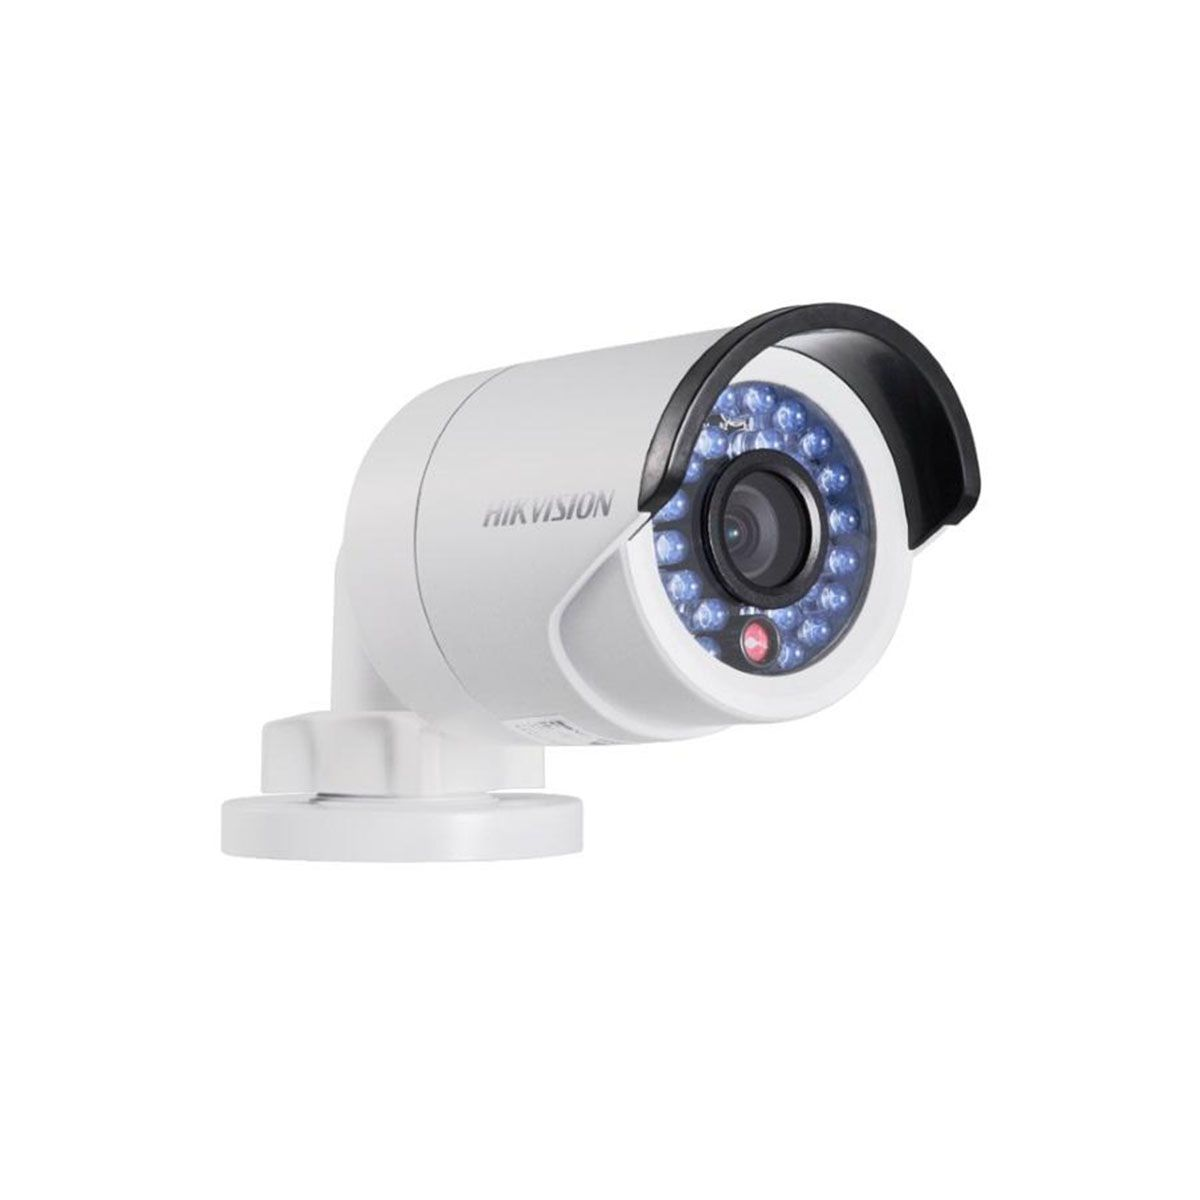 Cámara IP Bullet Hikvision DS-2CD2025FWD-I 2.8MM